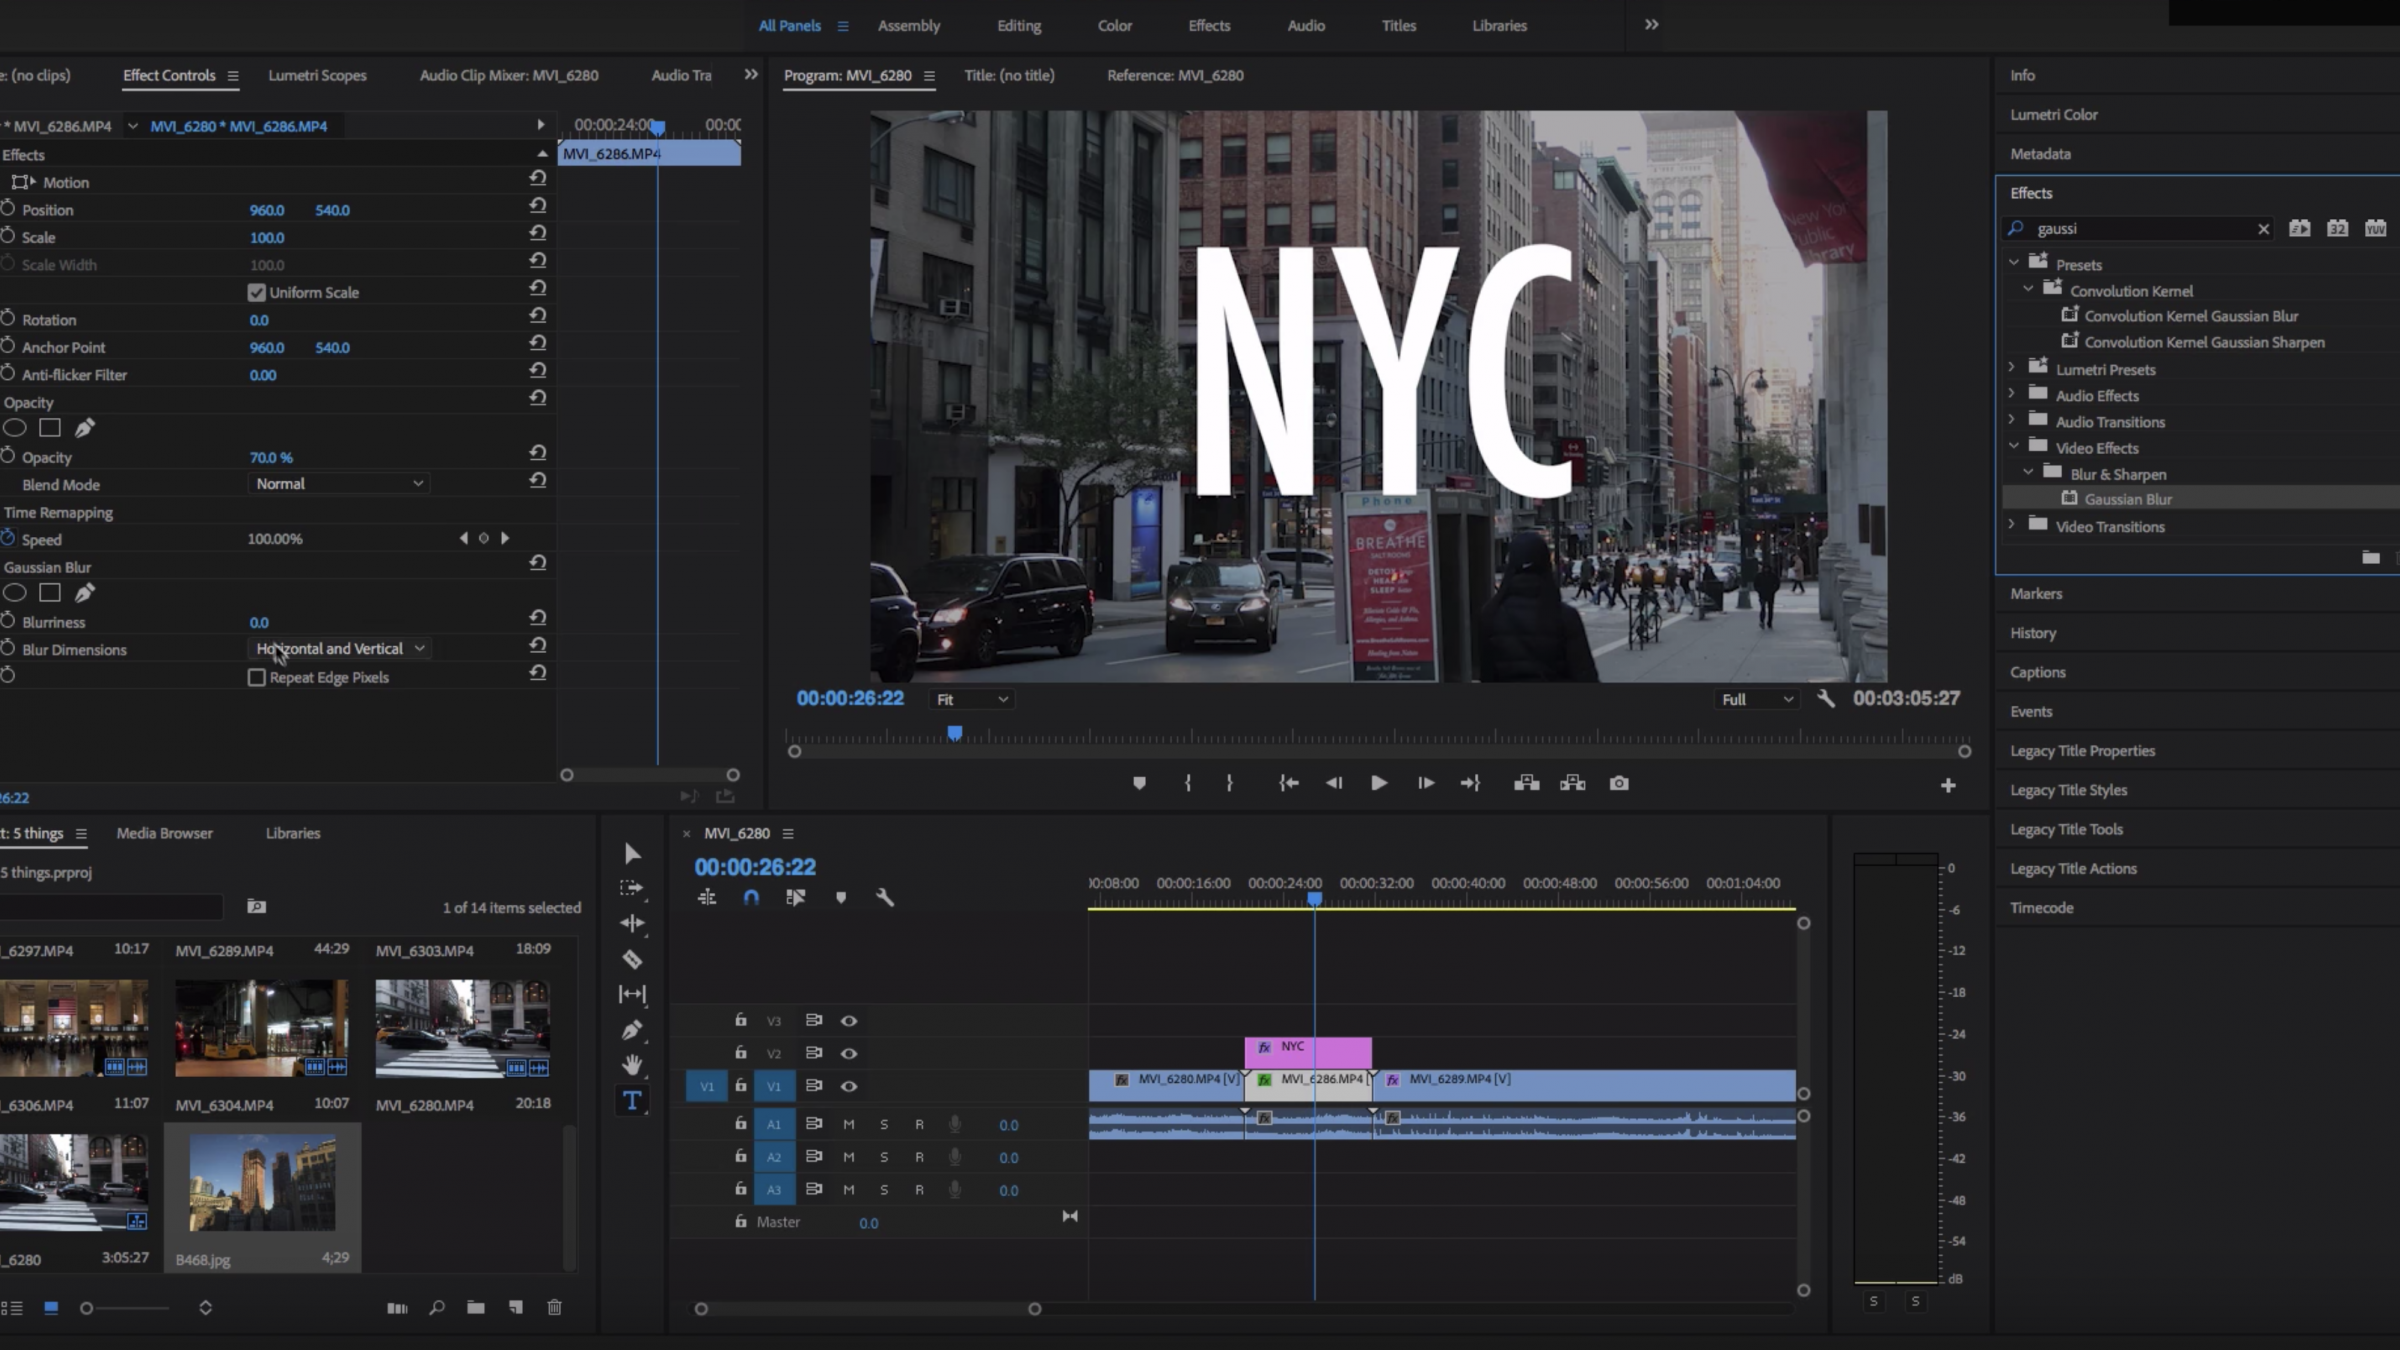 Watch: Little Editing Tricks That Can Make a Big Difference in Your Video